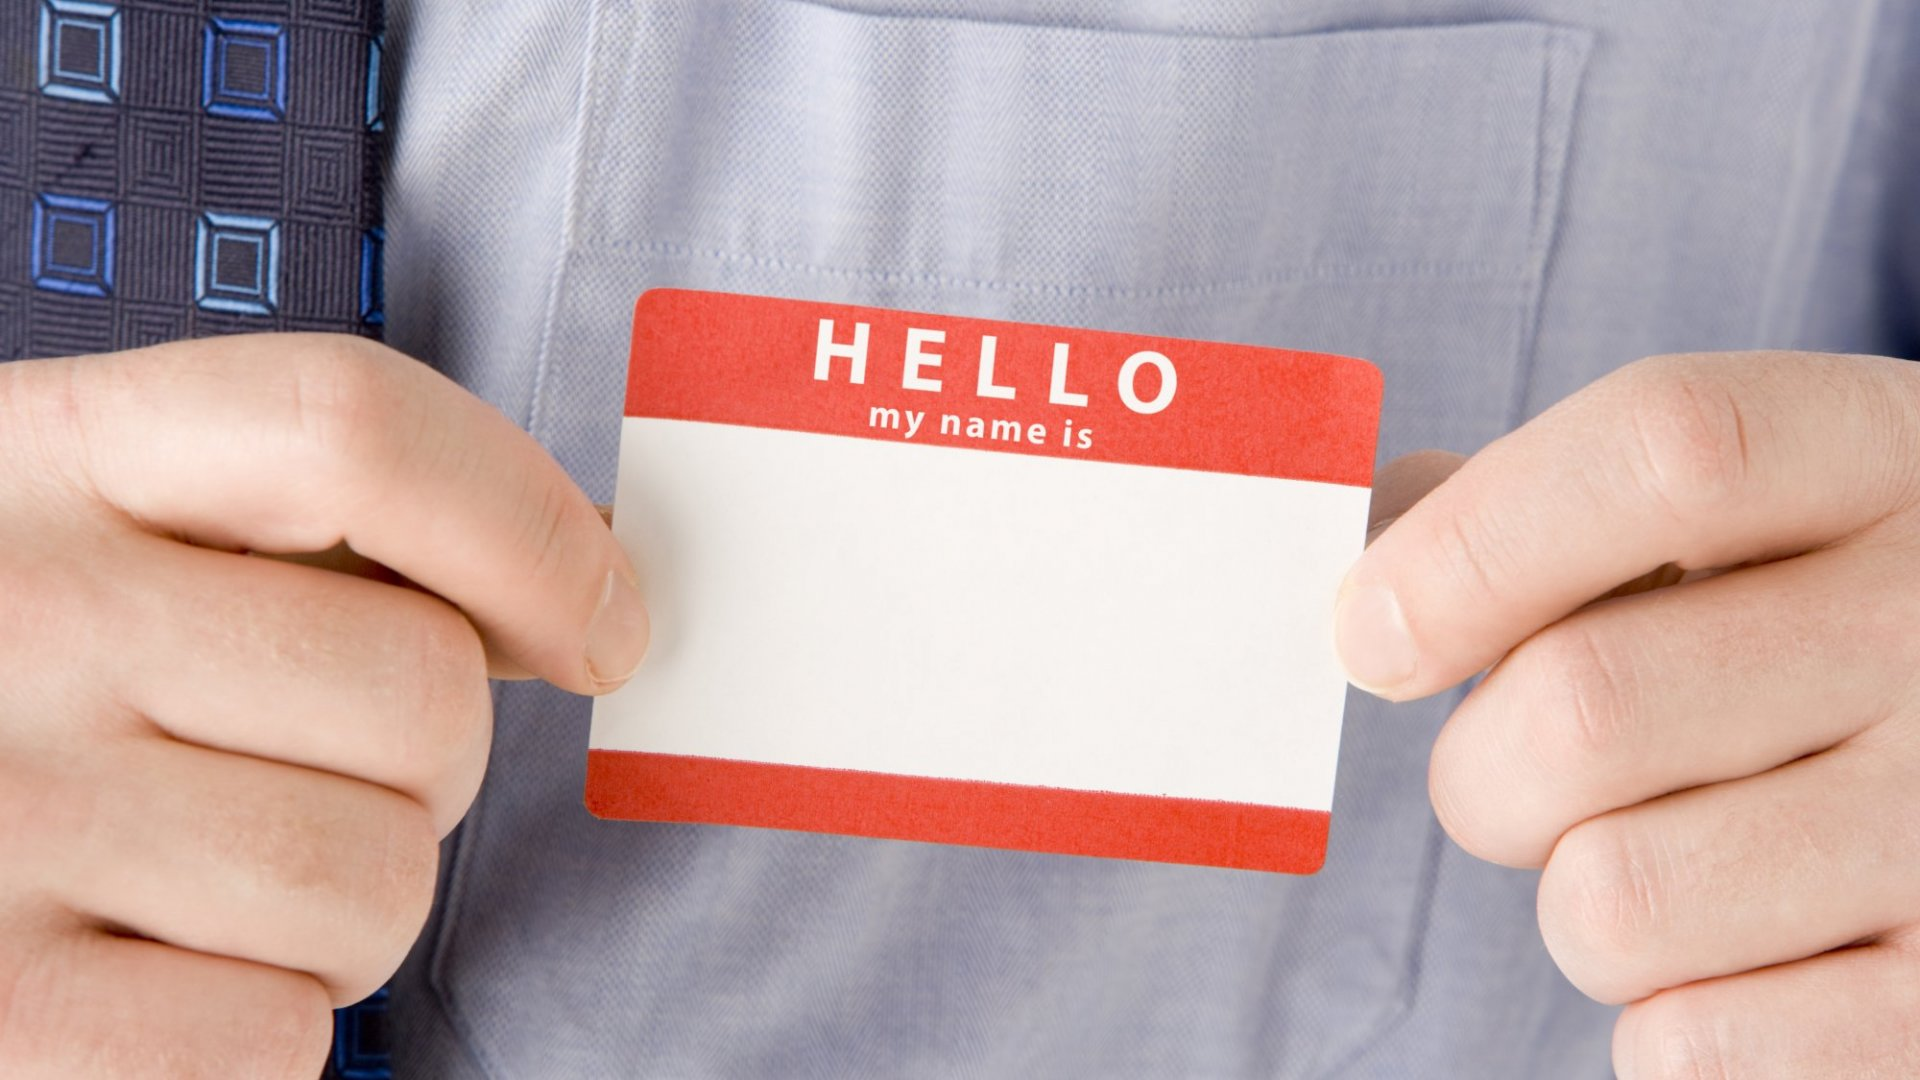 How to Be More Creative in Self-Introductions and First Impressions